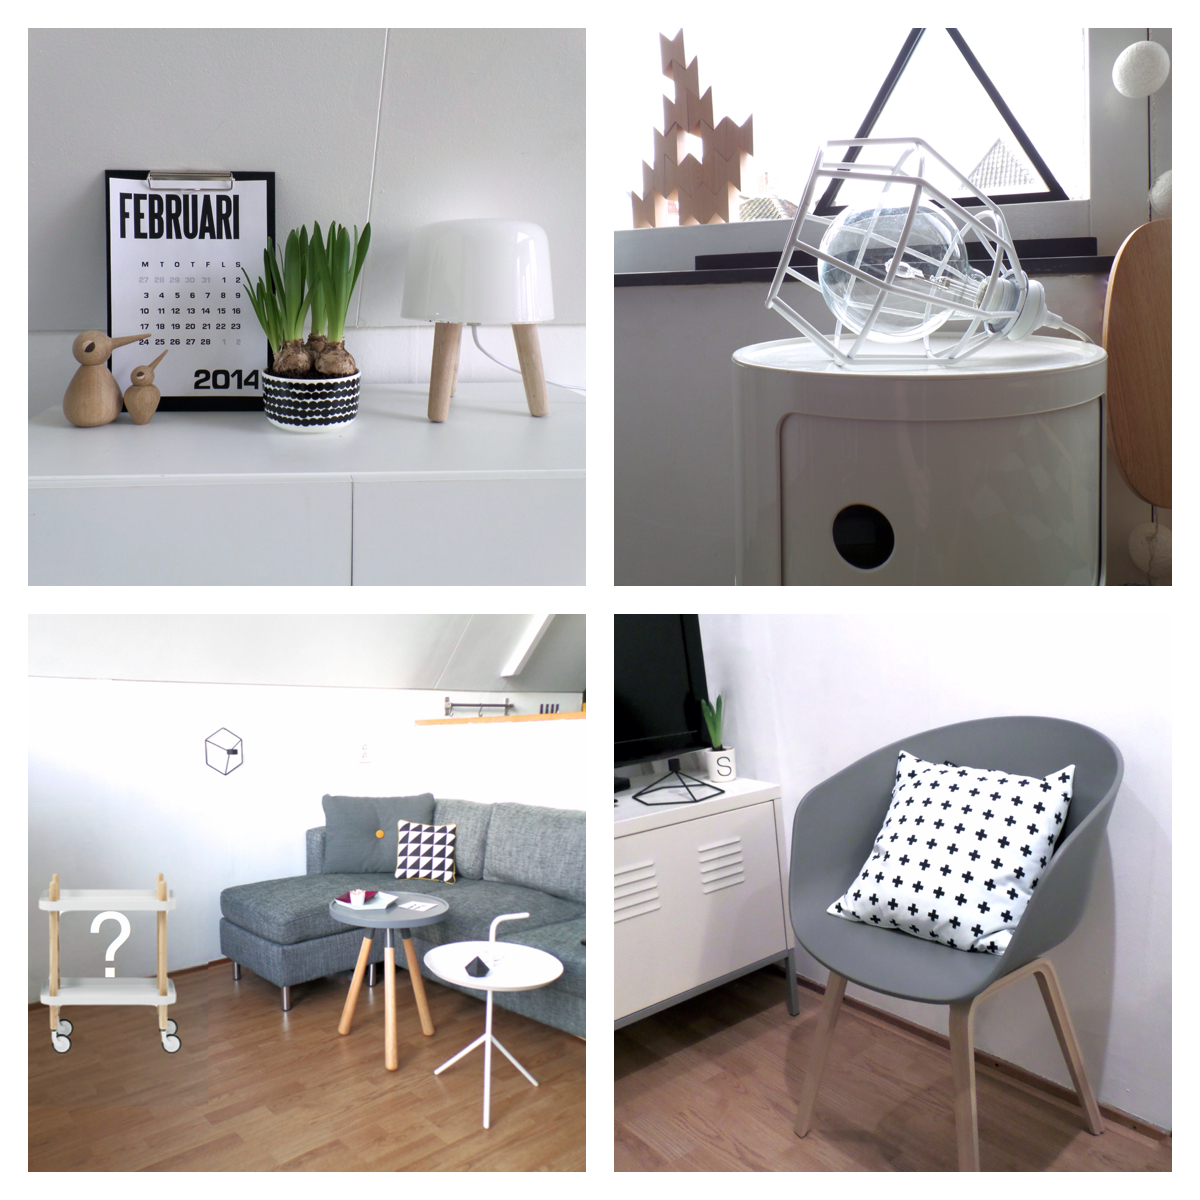 My Week in Instagram Pictures | Inspired Home Design Blog